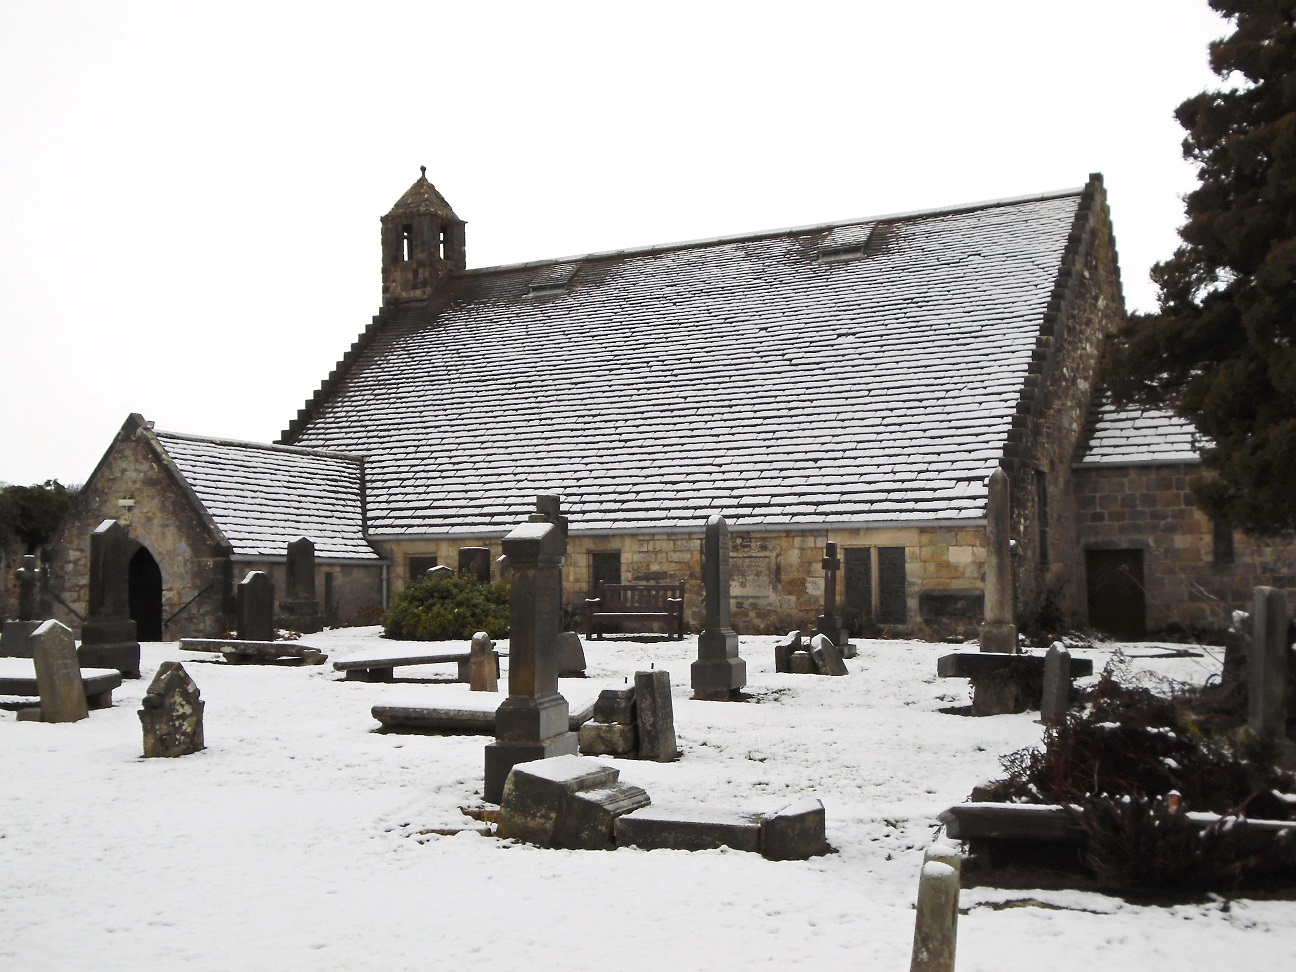 Photo: David G - The church in snow from the SE